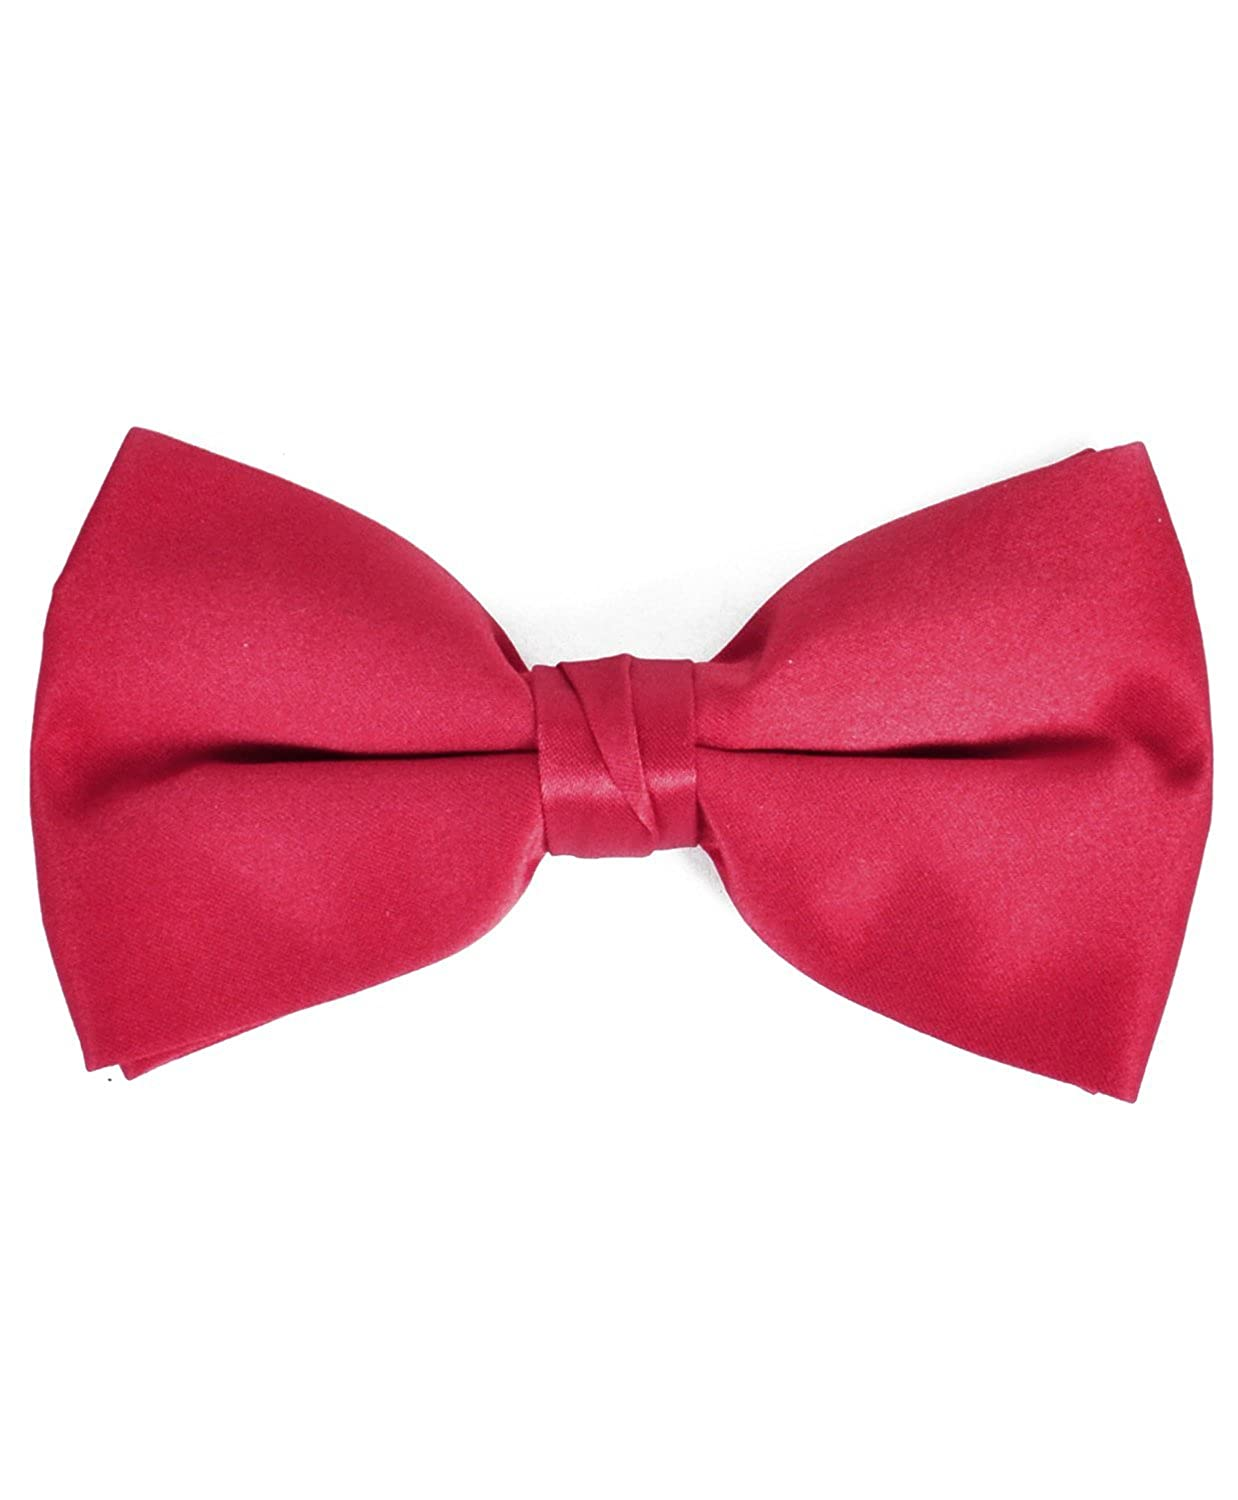 Mens Poly Satin Color Clip on Bow Tie